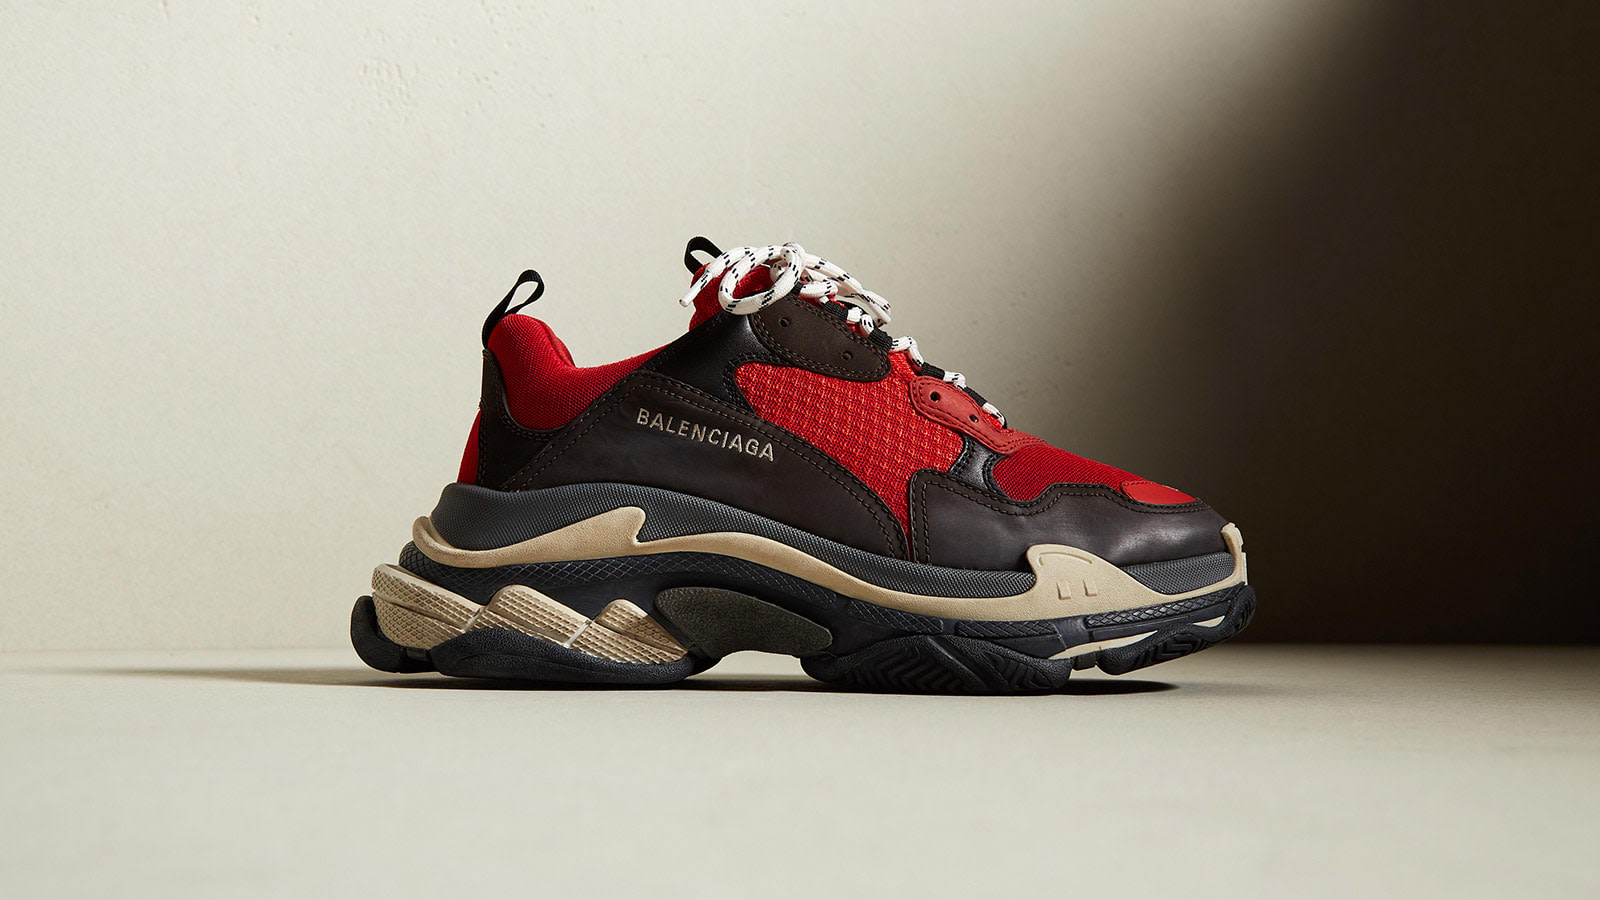 END. Features | Balenciaga Triple S 'Black & Red' Now